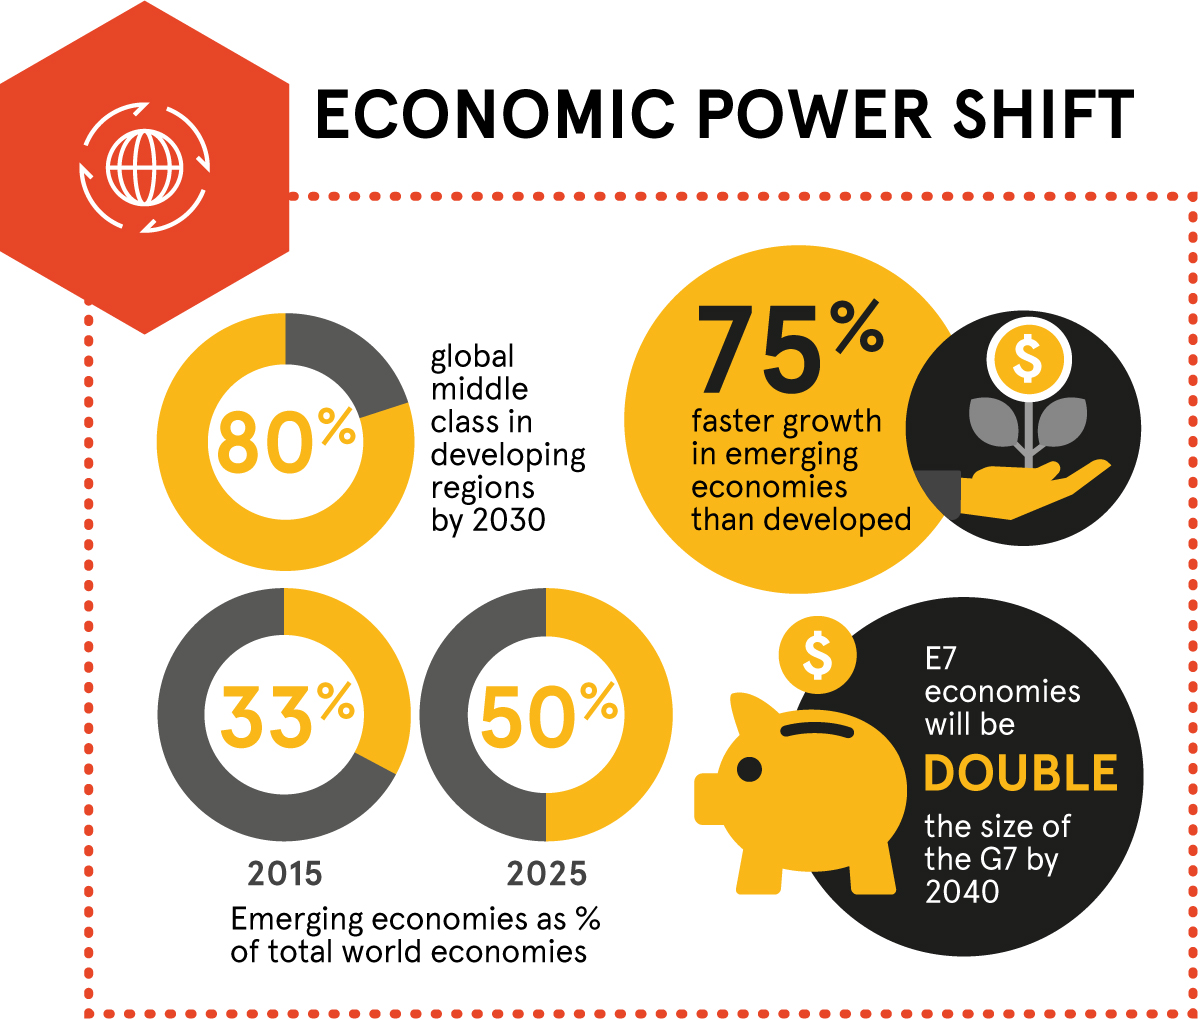 Megatrends – economic power shit. 80% – global middle class in developing regions by 2030. 75% faster growth in emerging economics than developed. Emerging economics as percentage of total world economies: 2015 (33%), 2025 (50%). E7 economics will be double the size of the G7 by 2040.